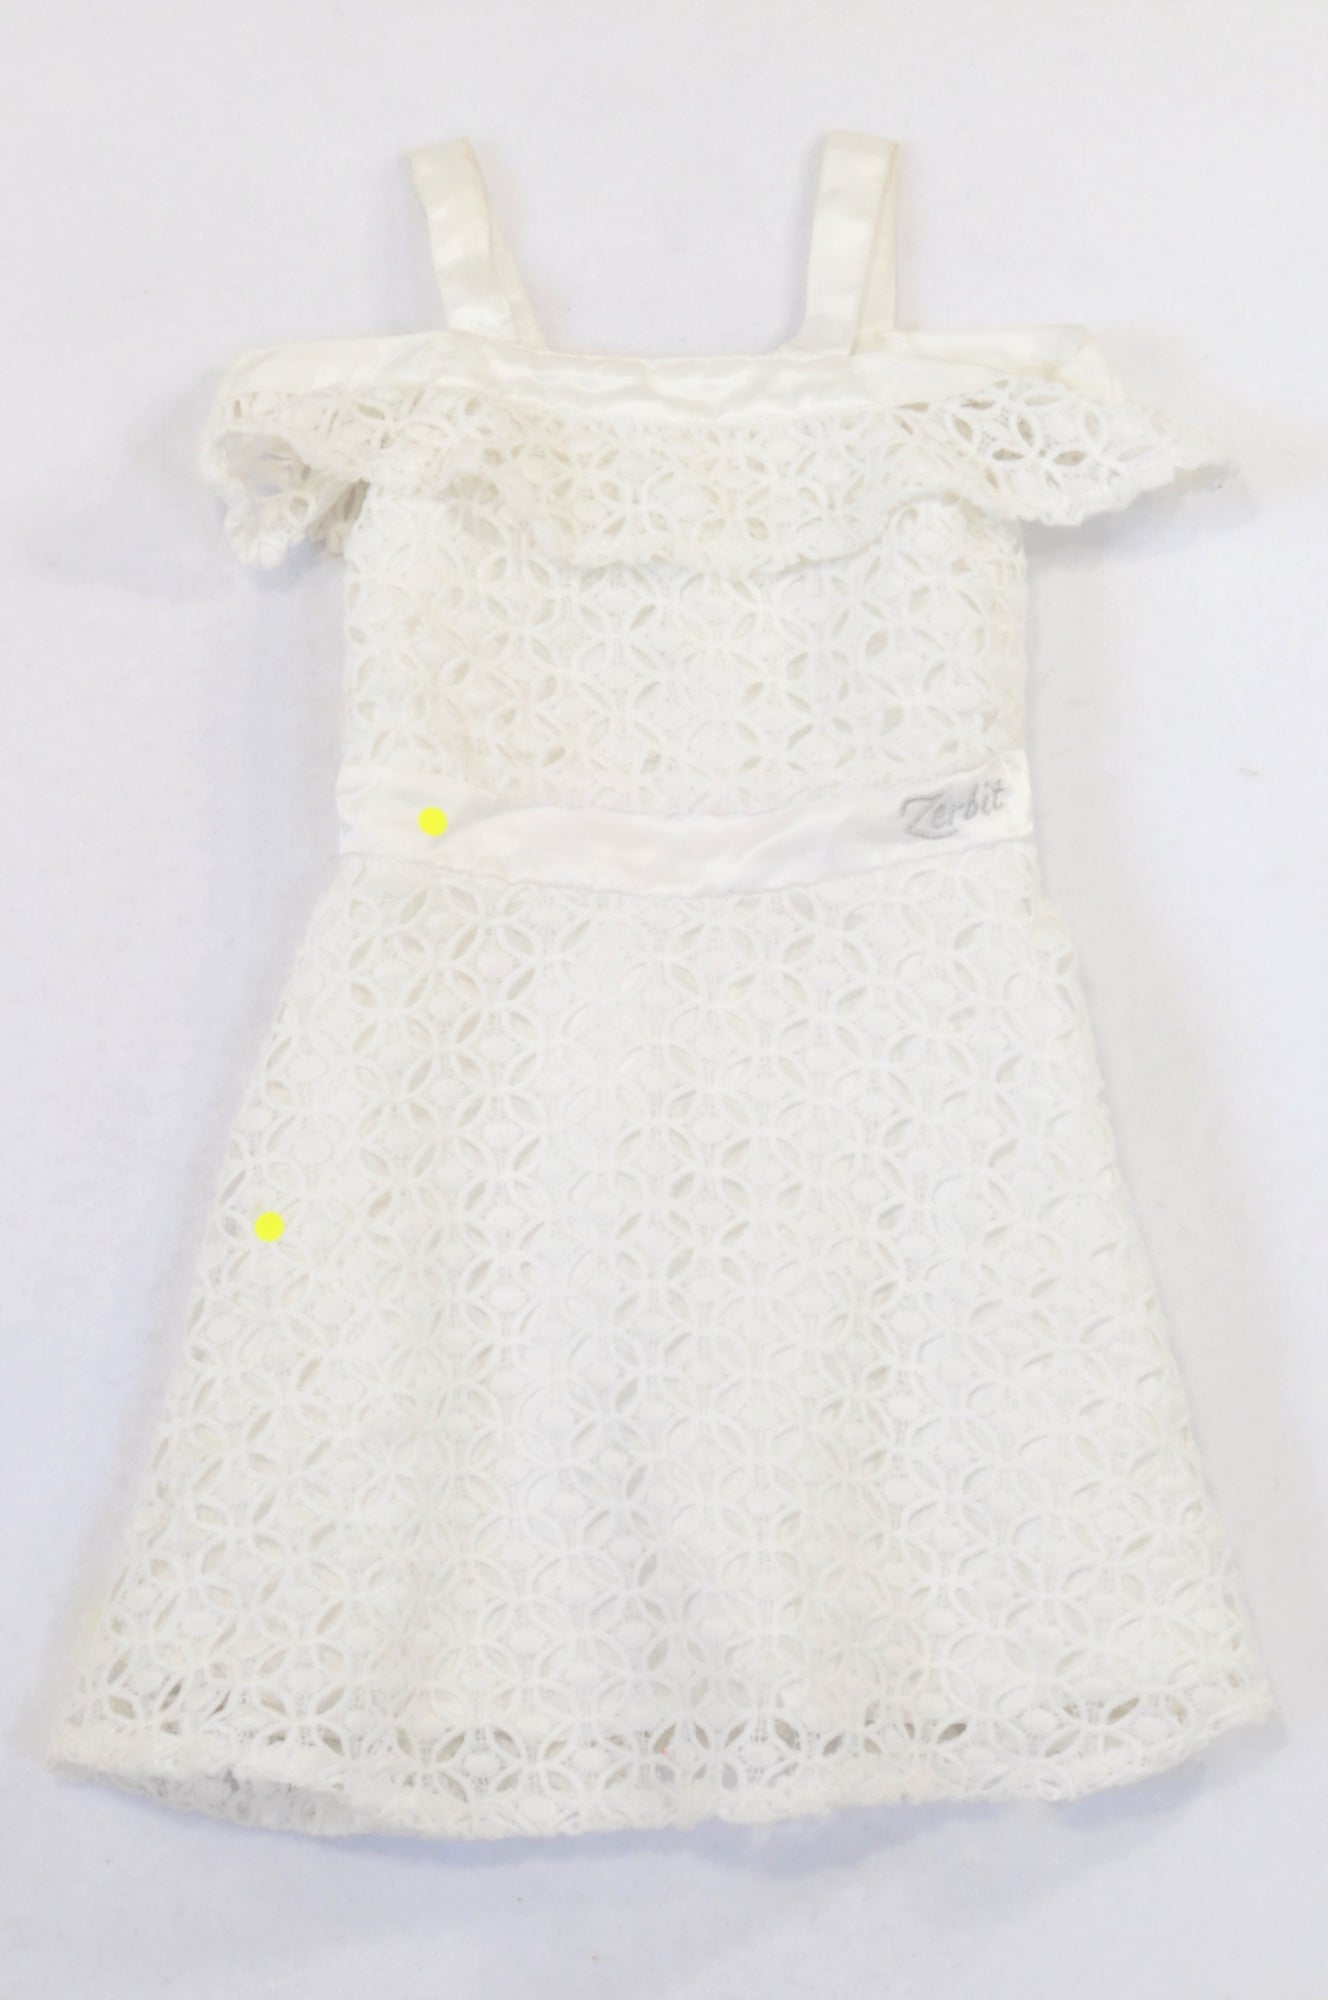 fc4c53f5633 Zerbit Textured Eyelet Occasions Dress Girls 3-4 years – Once More